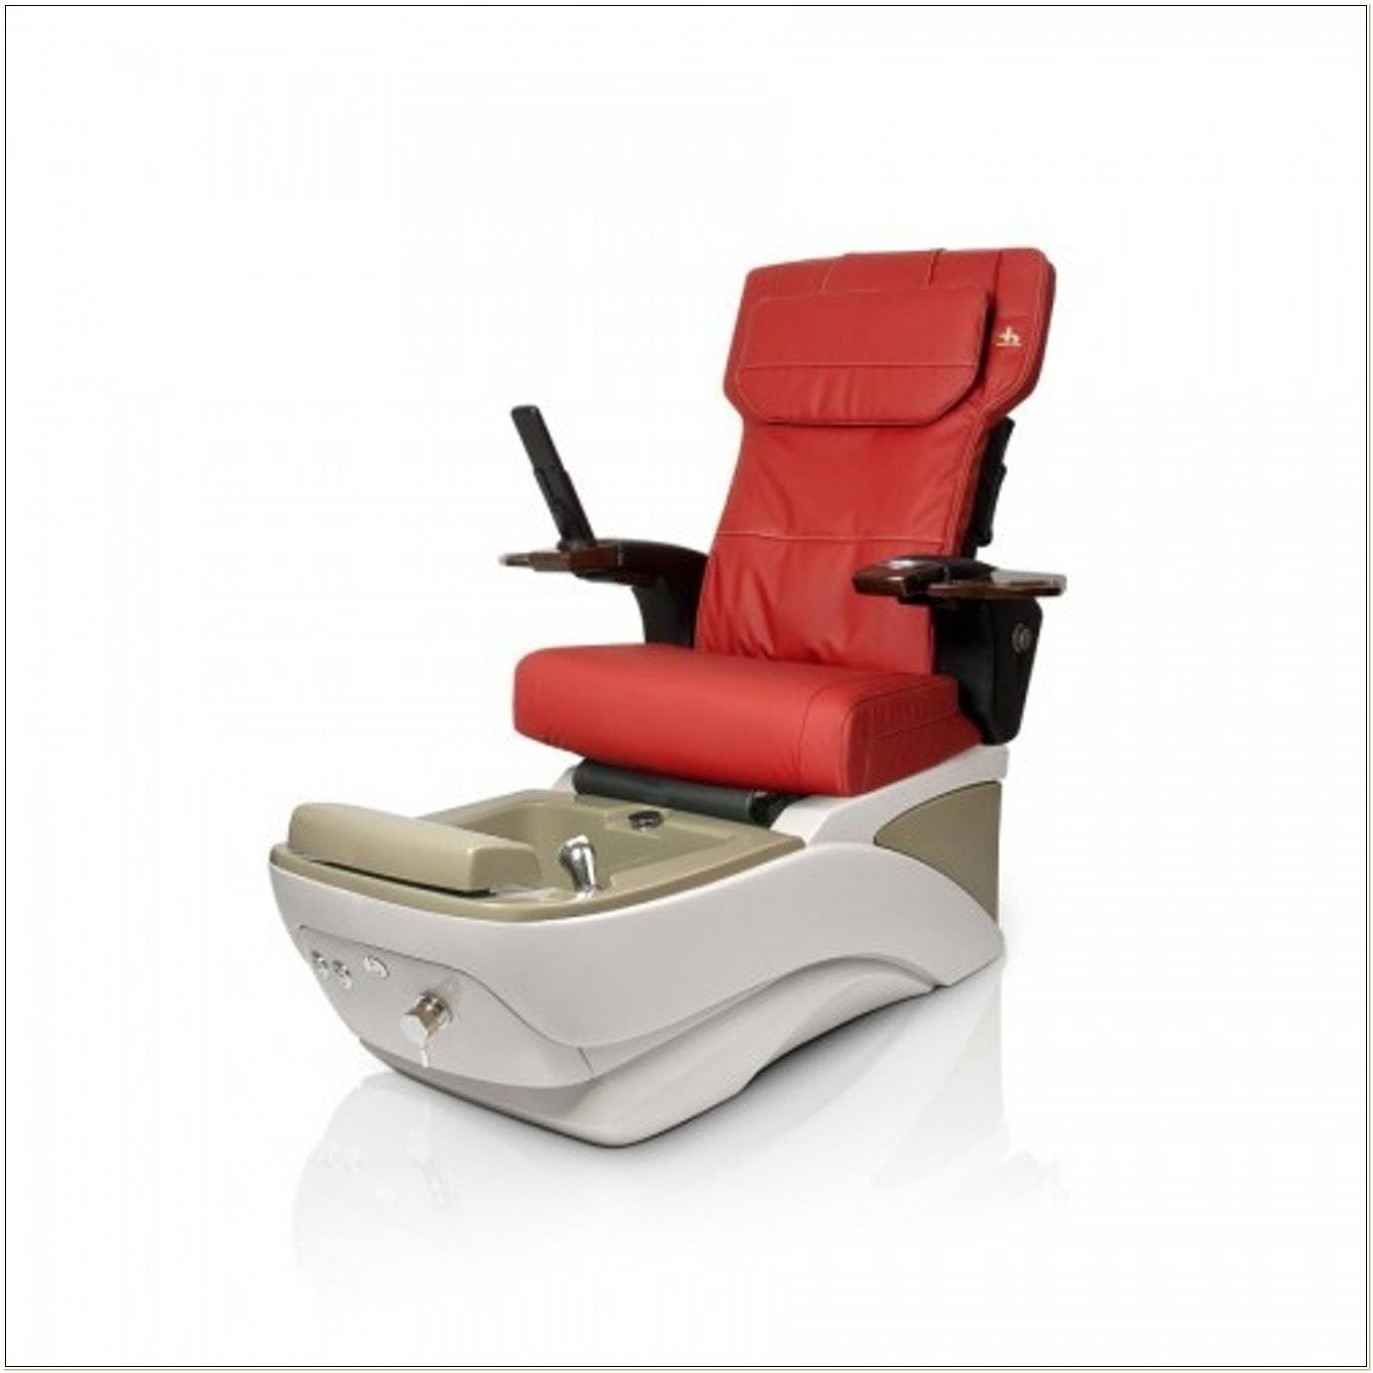 Ijoy 100 Massage Chair Cover